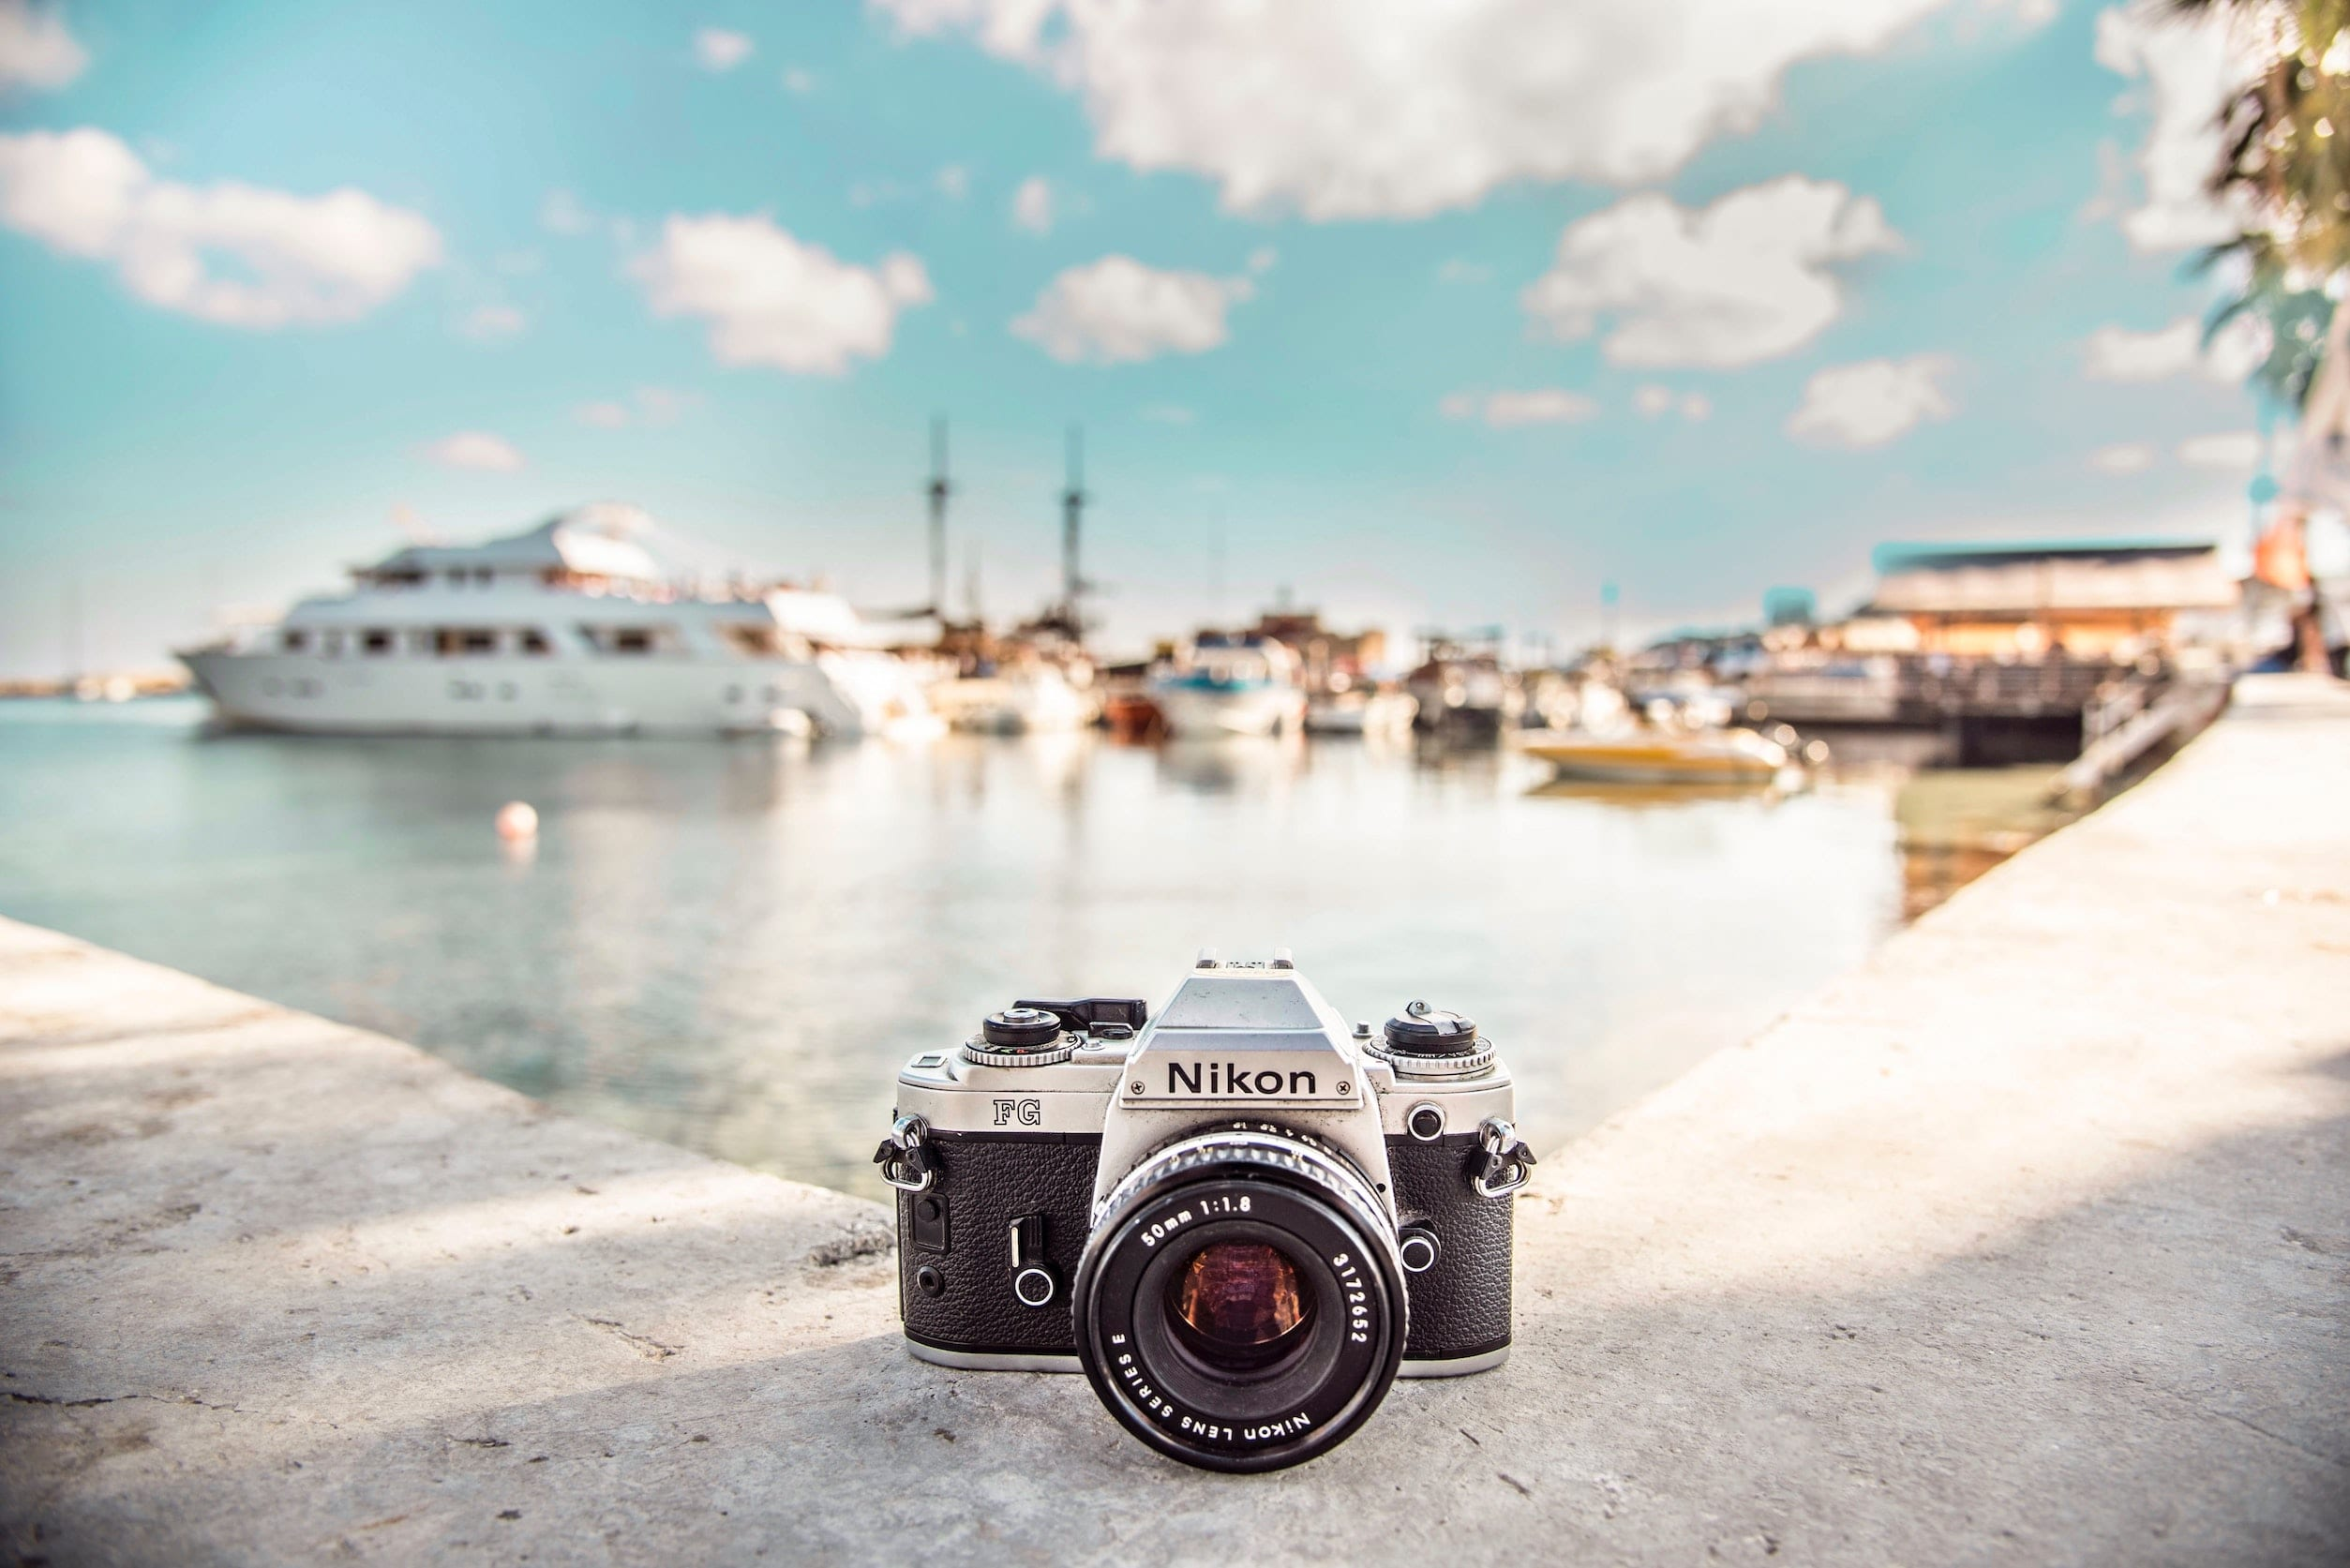 camera on a ledge in a harbour